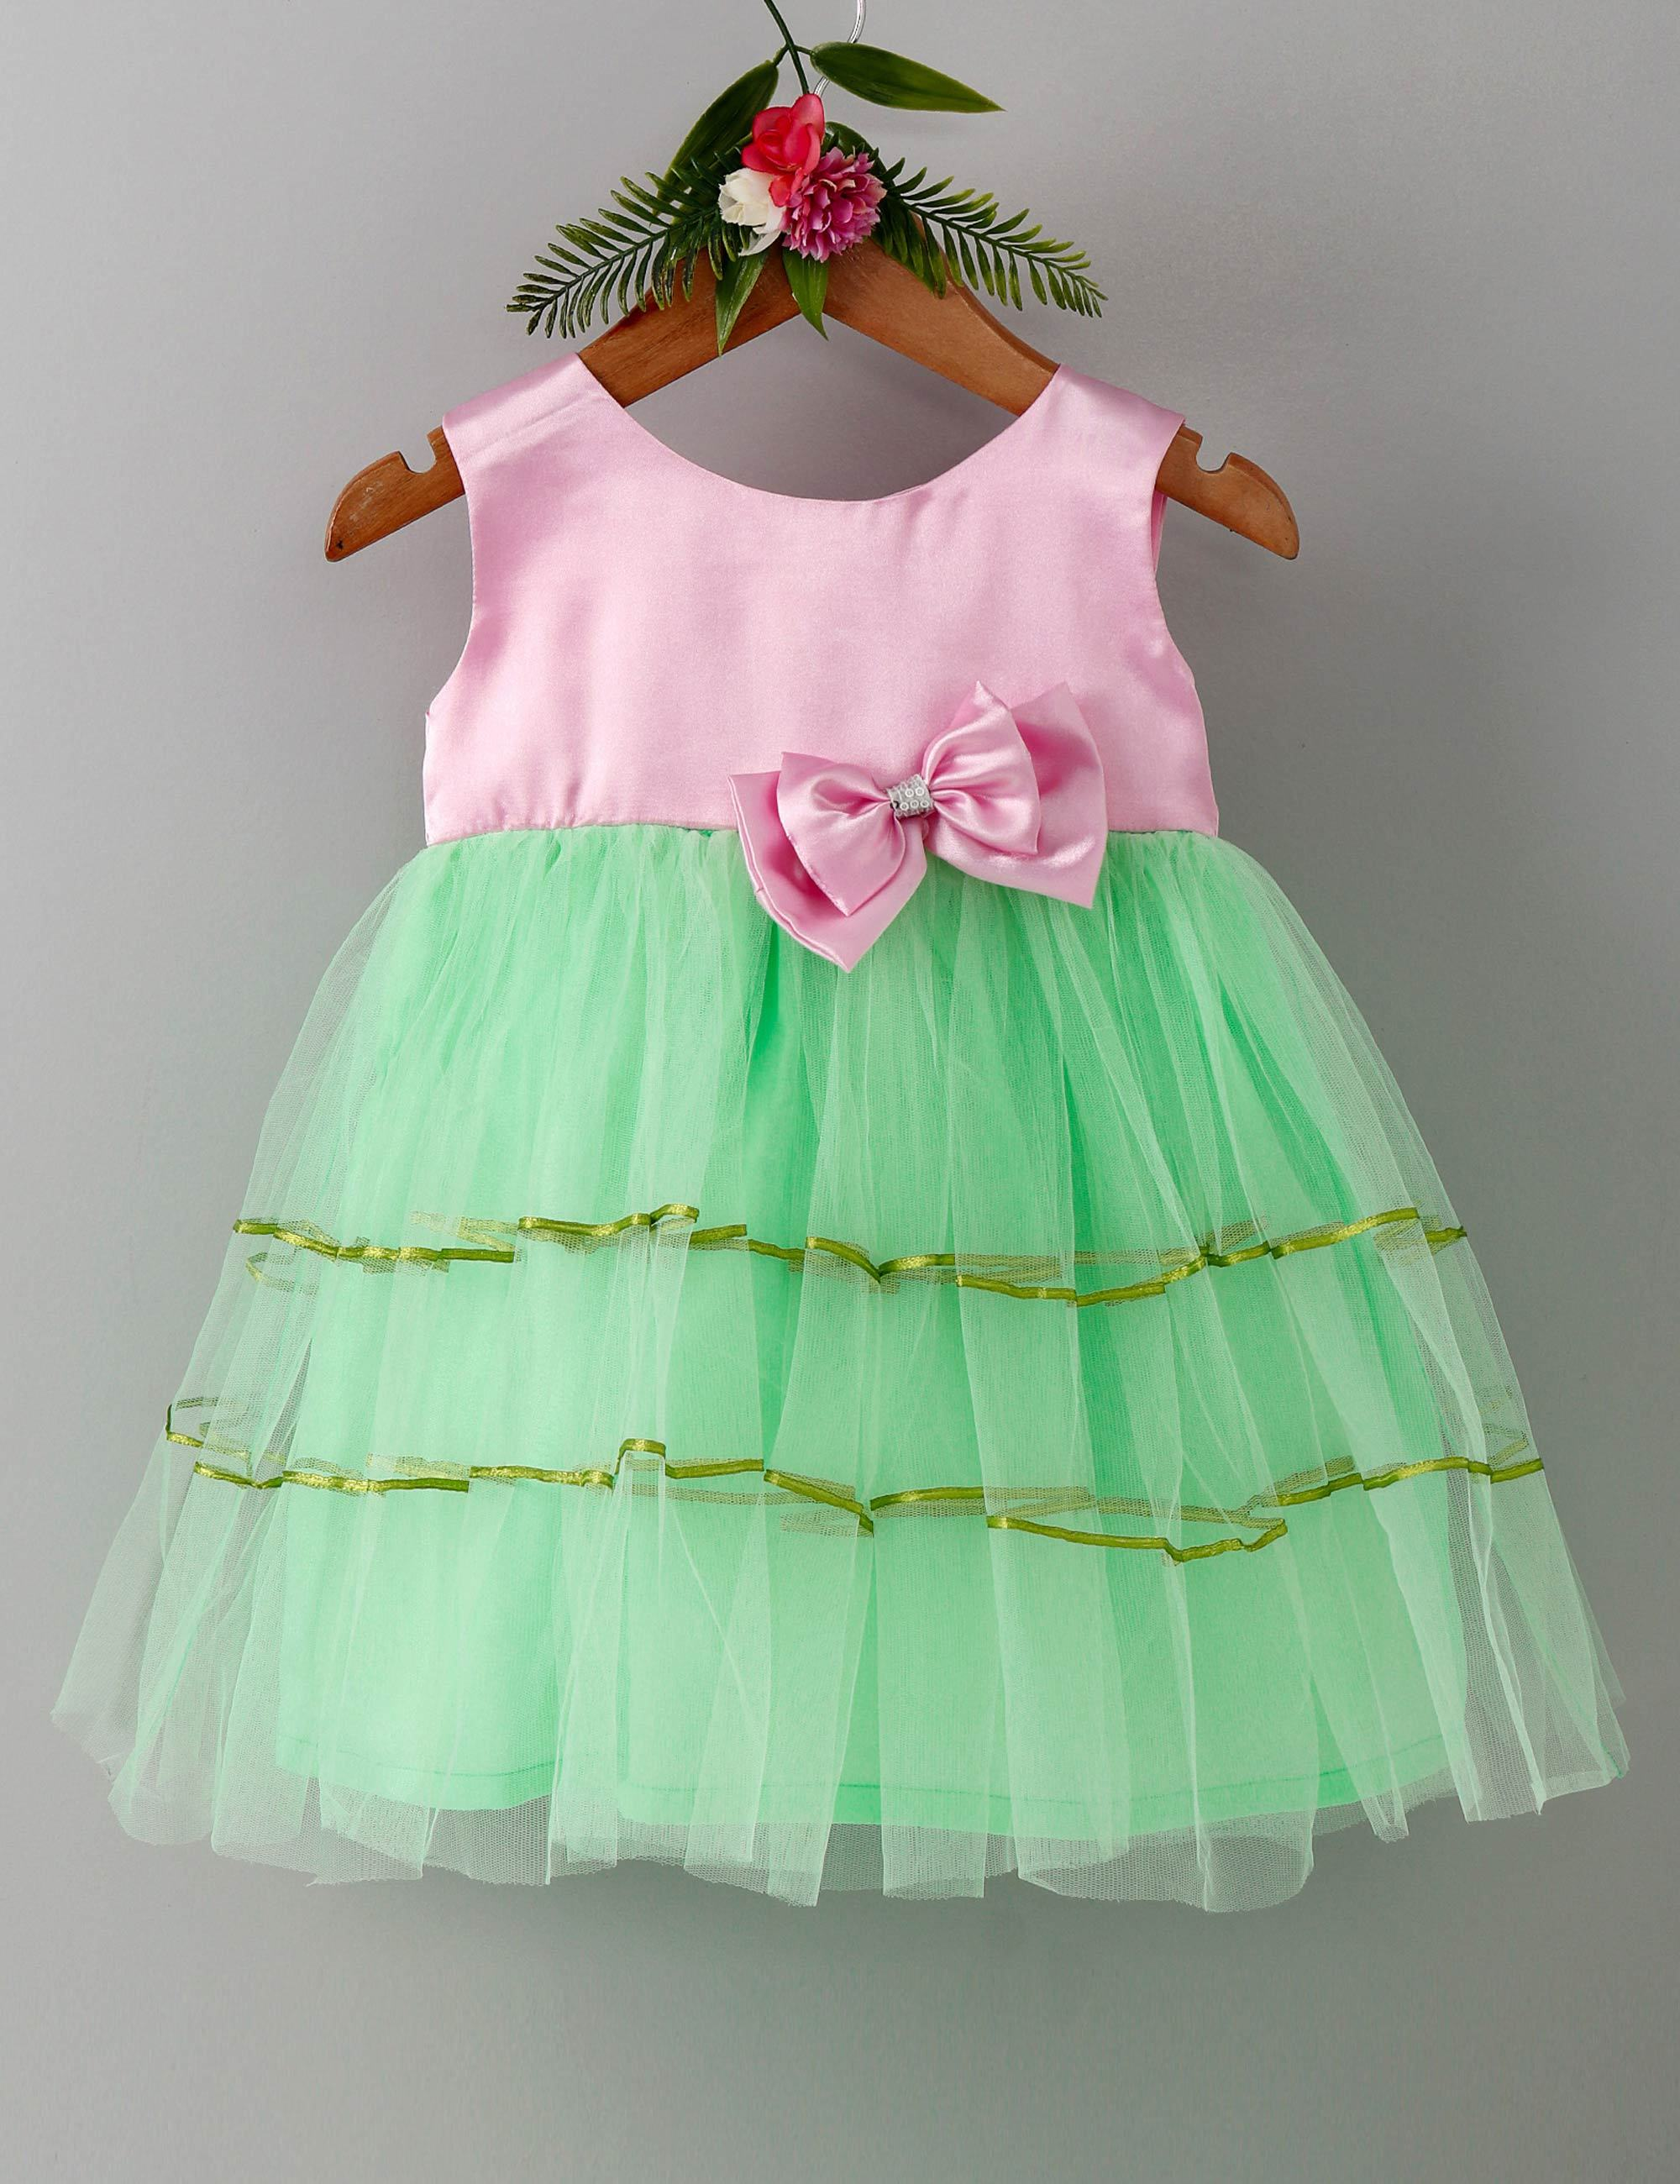 baa49a09e Buy Double bow sleeveless baby party frock-Pink & Green at best ...